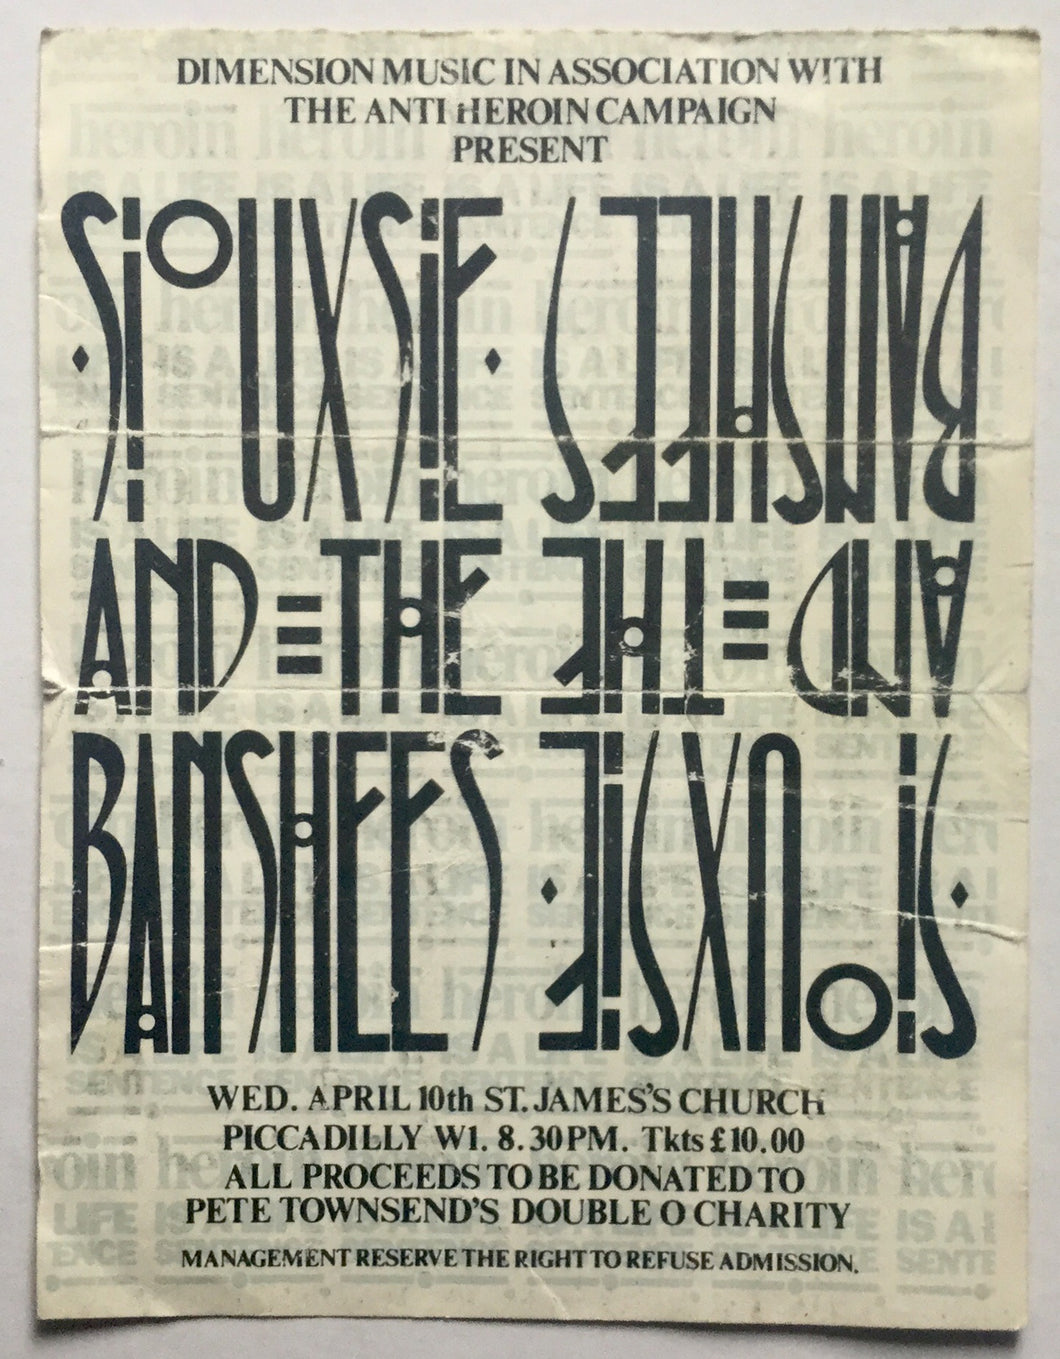 Siouxsie & The Banshees Original Used Concert Ticket St. James Church London 10th Apr 1985